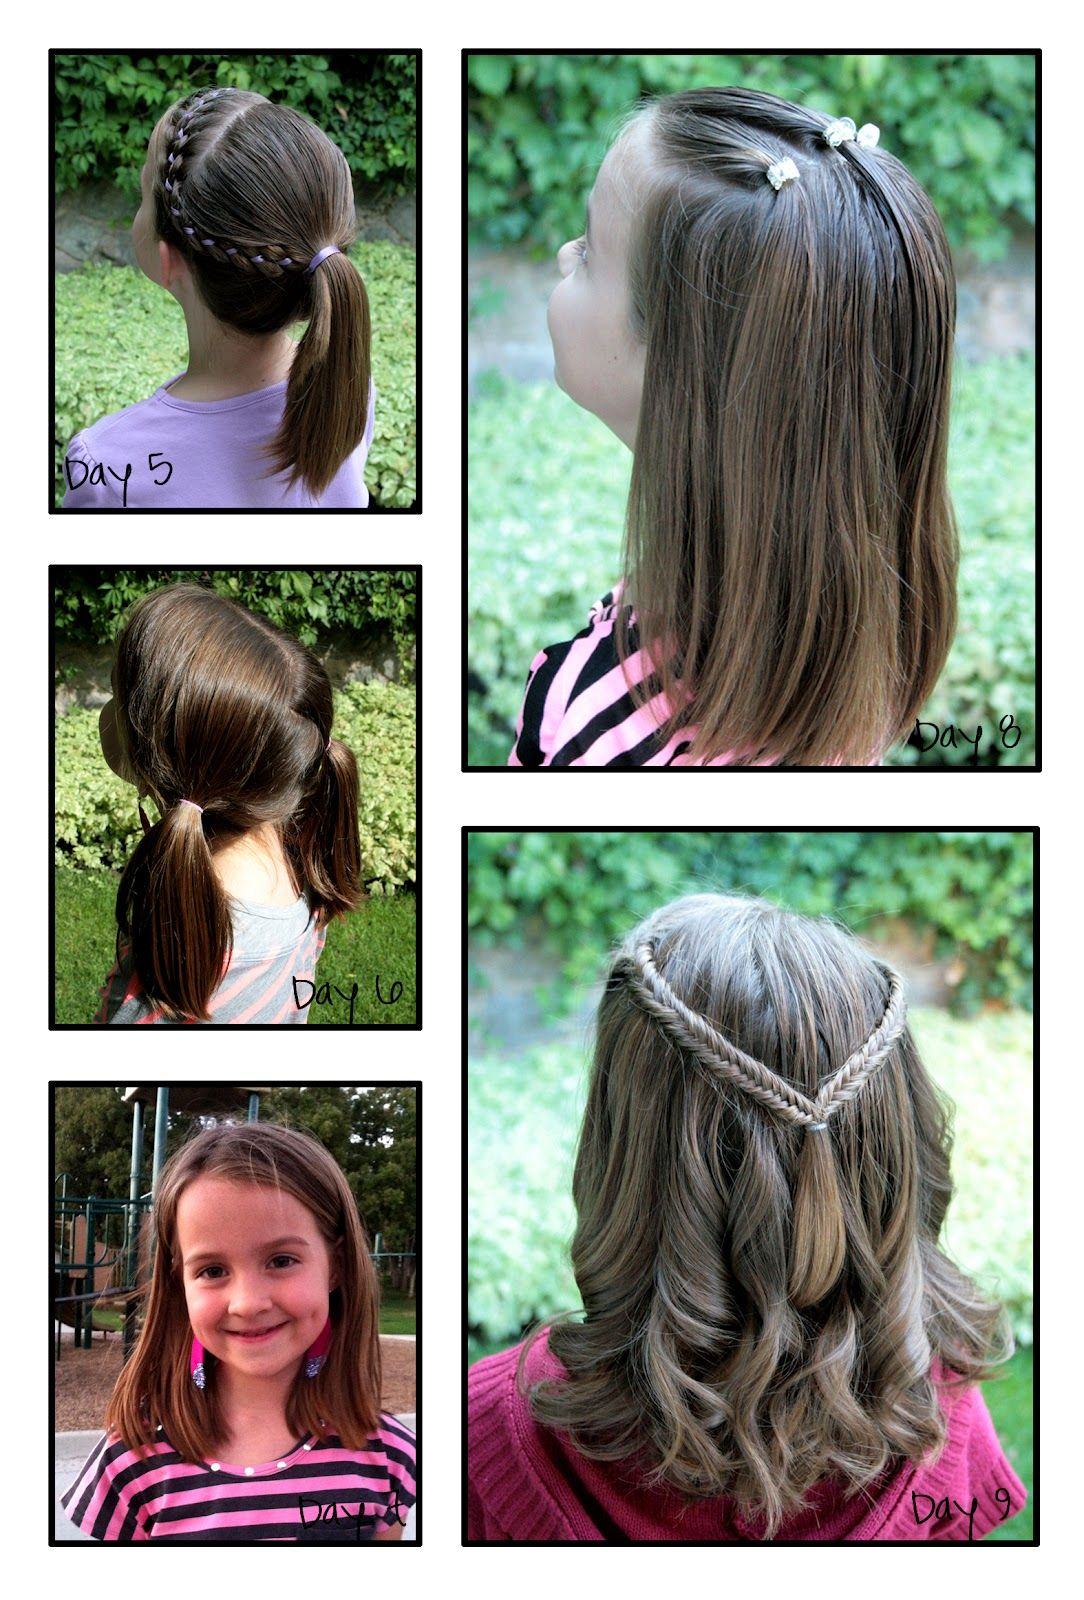 girly do's by jenn: school week 2 | 100 days of hair {years one